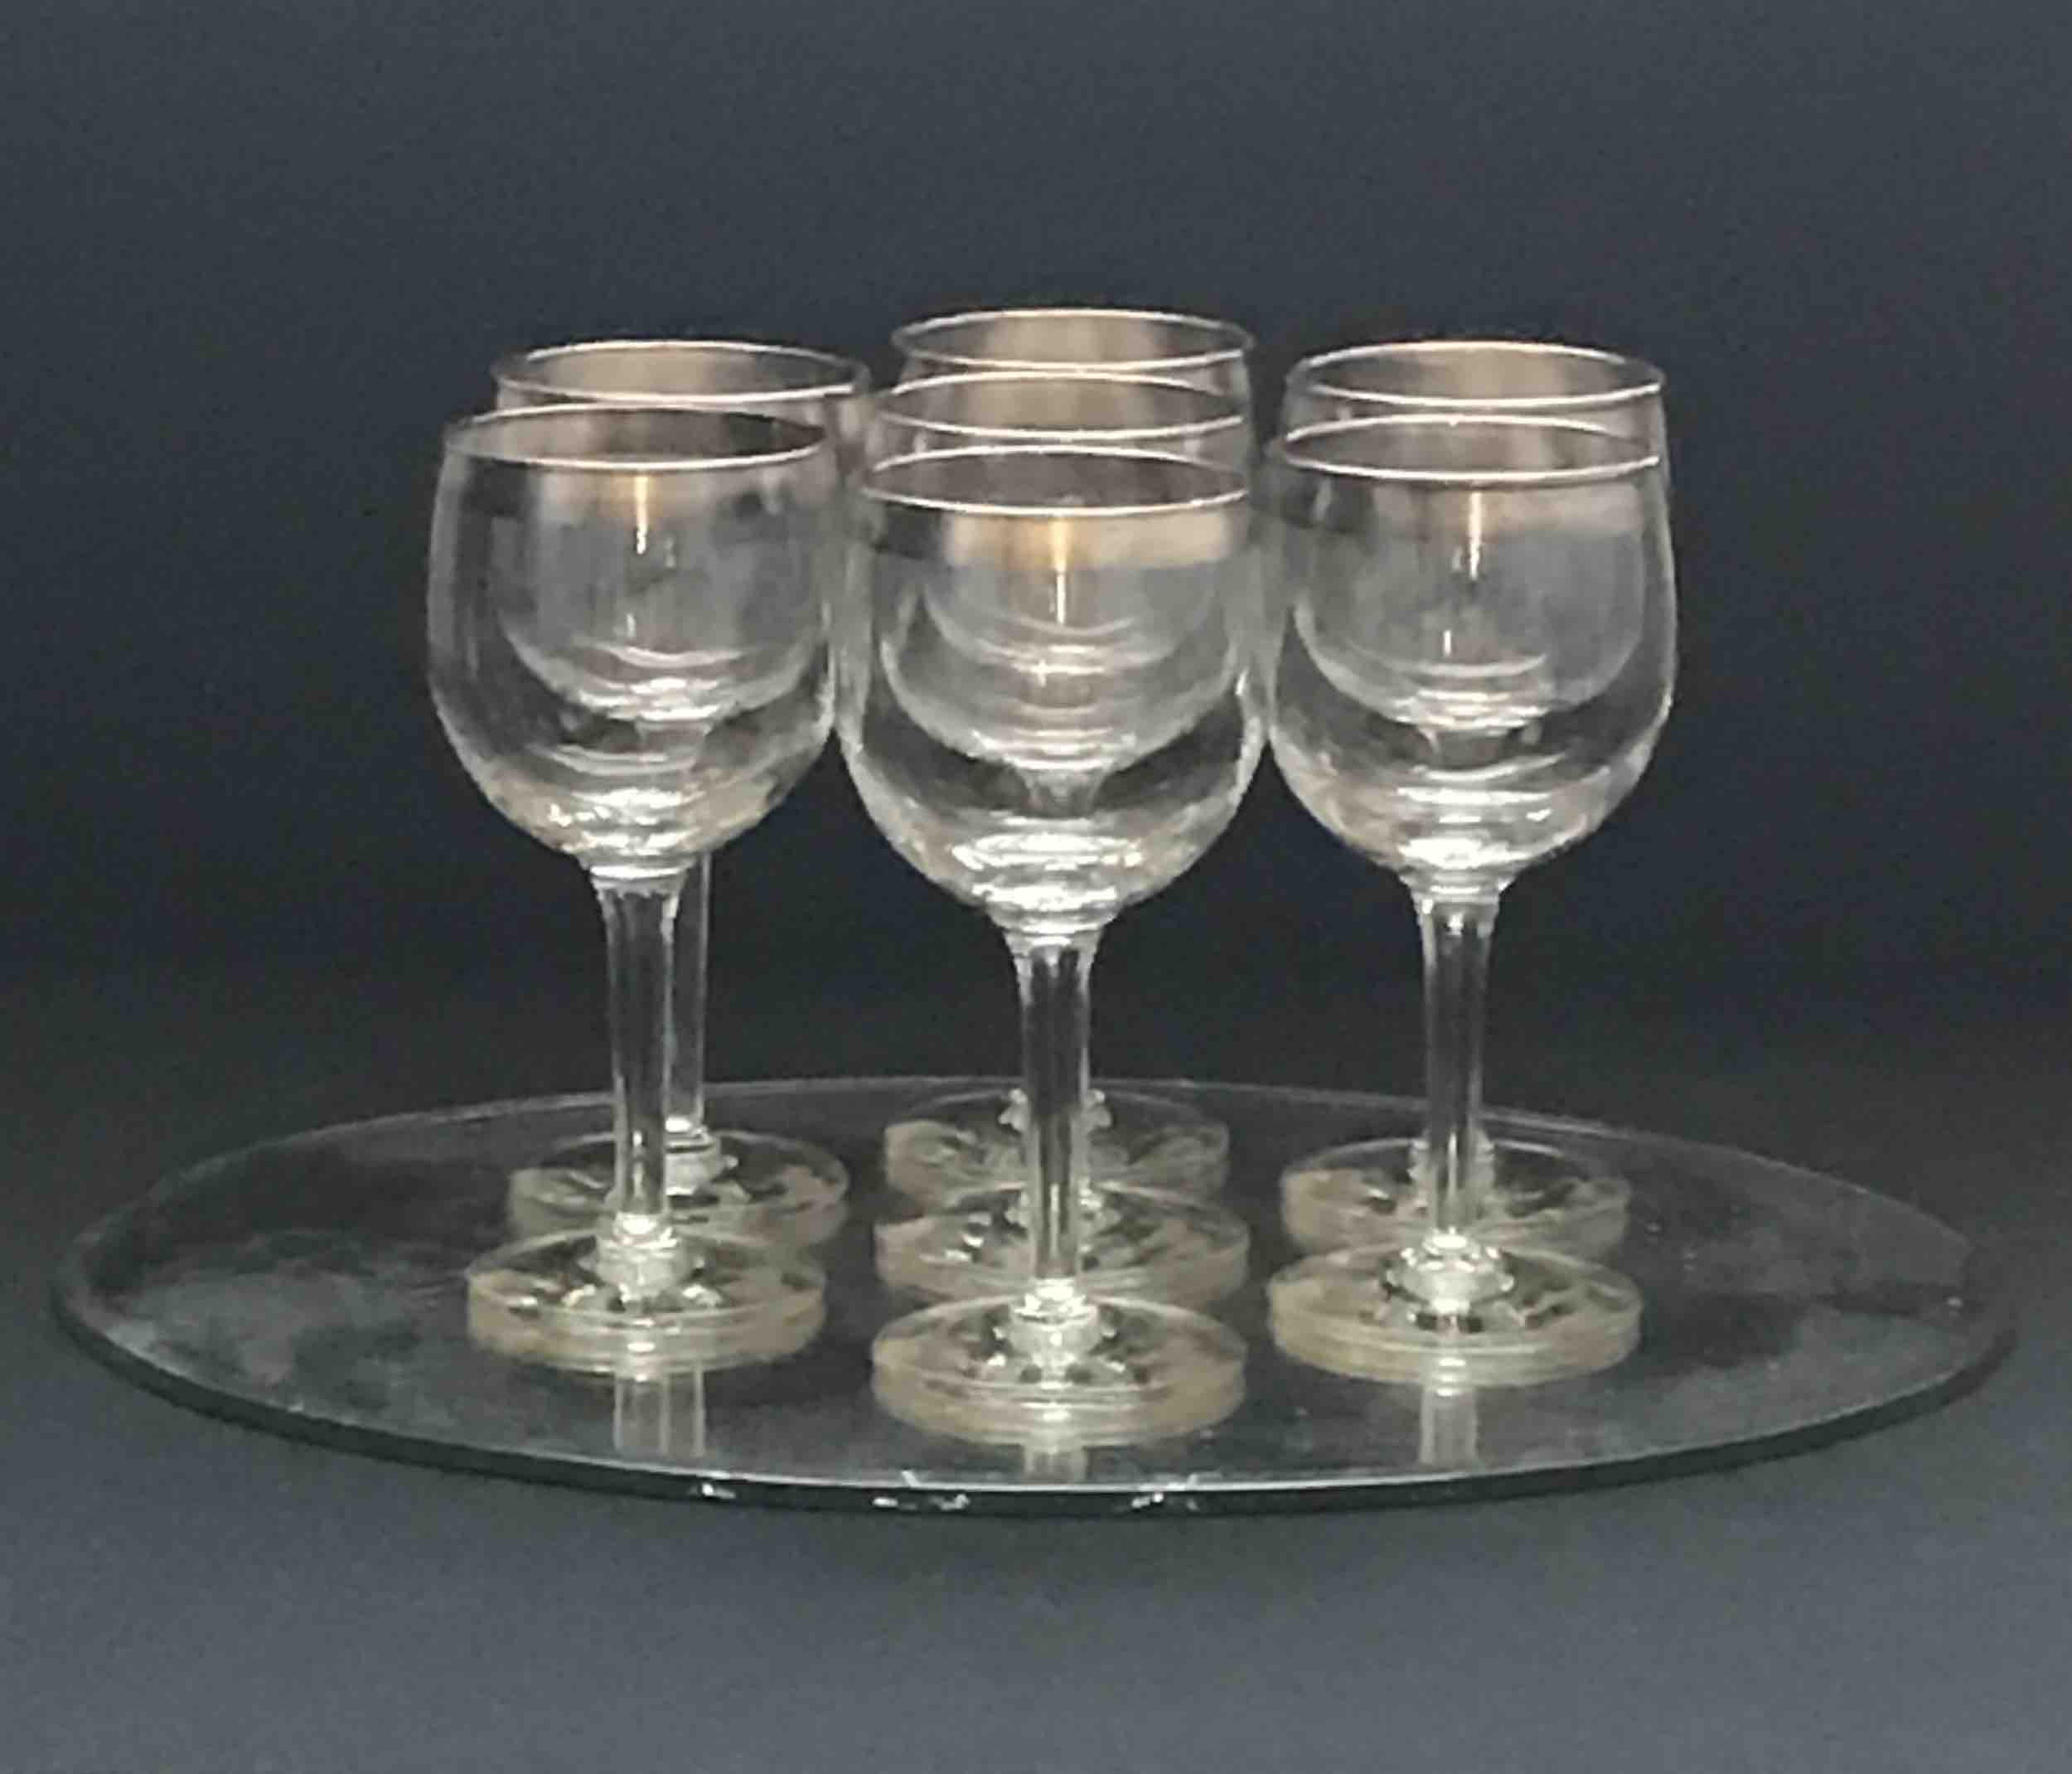 "#10: Seven silver-rimmed Dorothy Thorpe wineglasses on oval, silvered Mercury glass mirror. 6.5"" x 11"" x 9"""